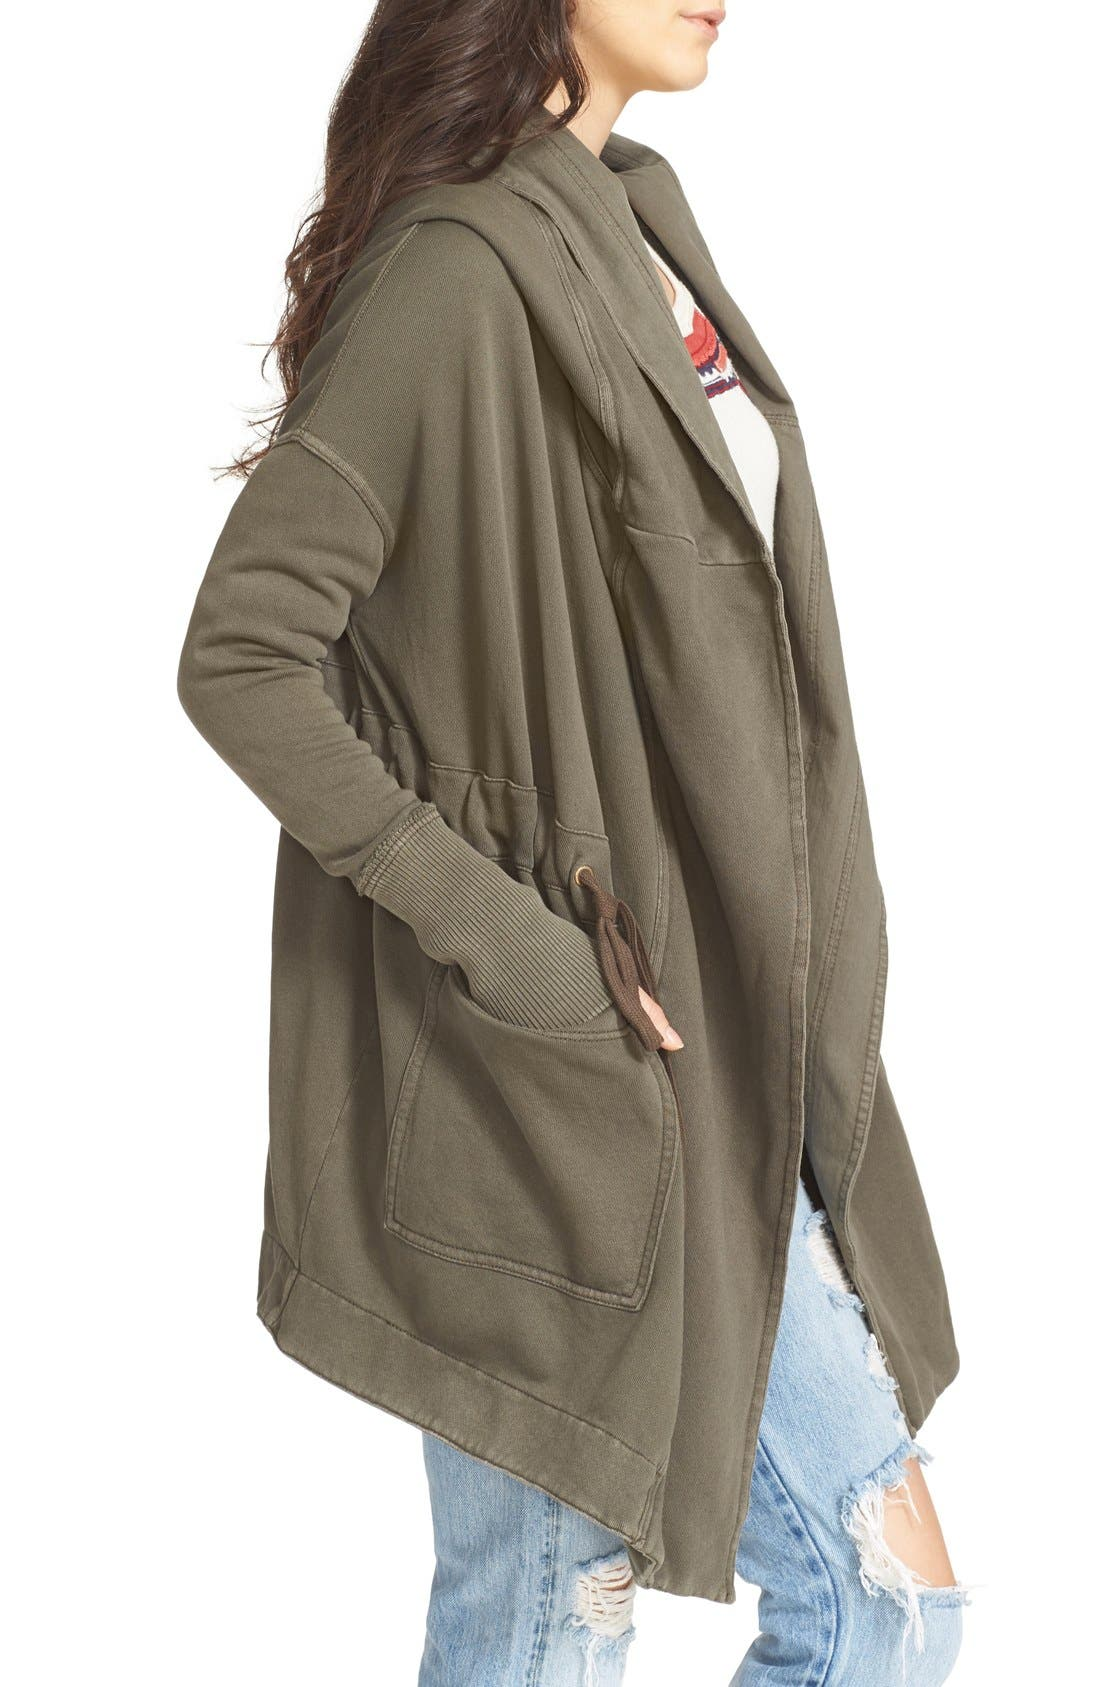 FREE PEOPLE, Brentwood Cotton Cardigan, Alternate thumbnail 6, color, 350